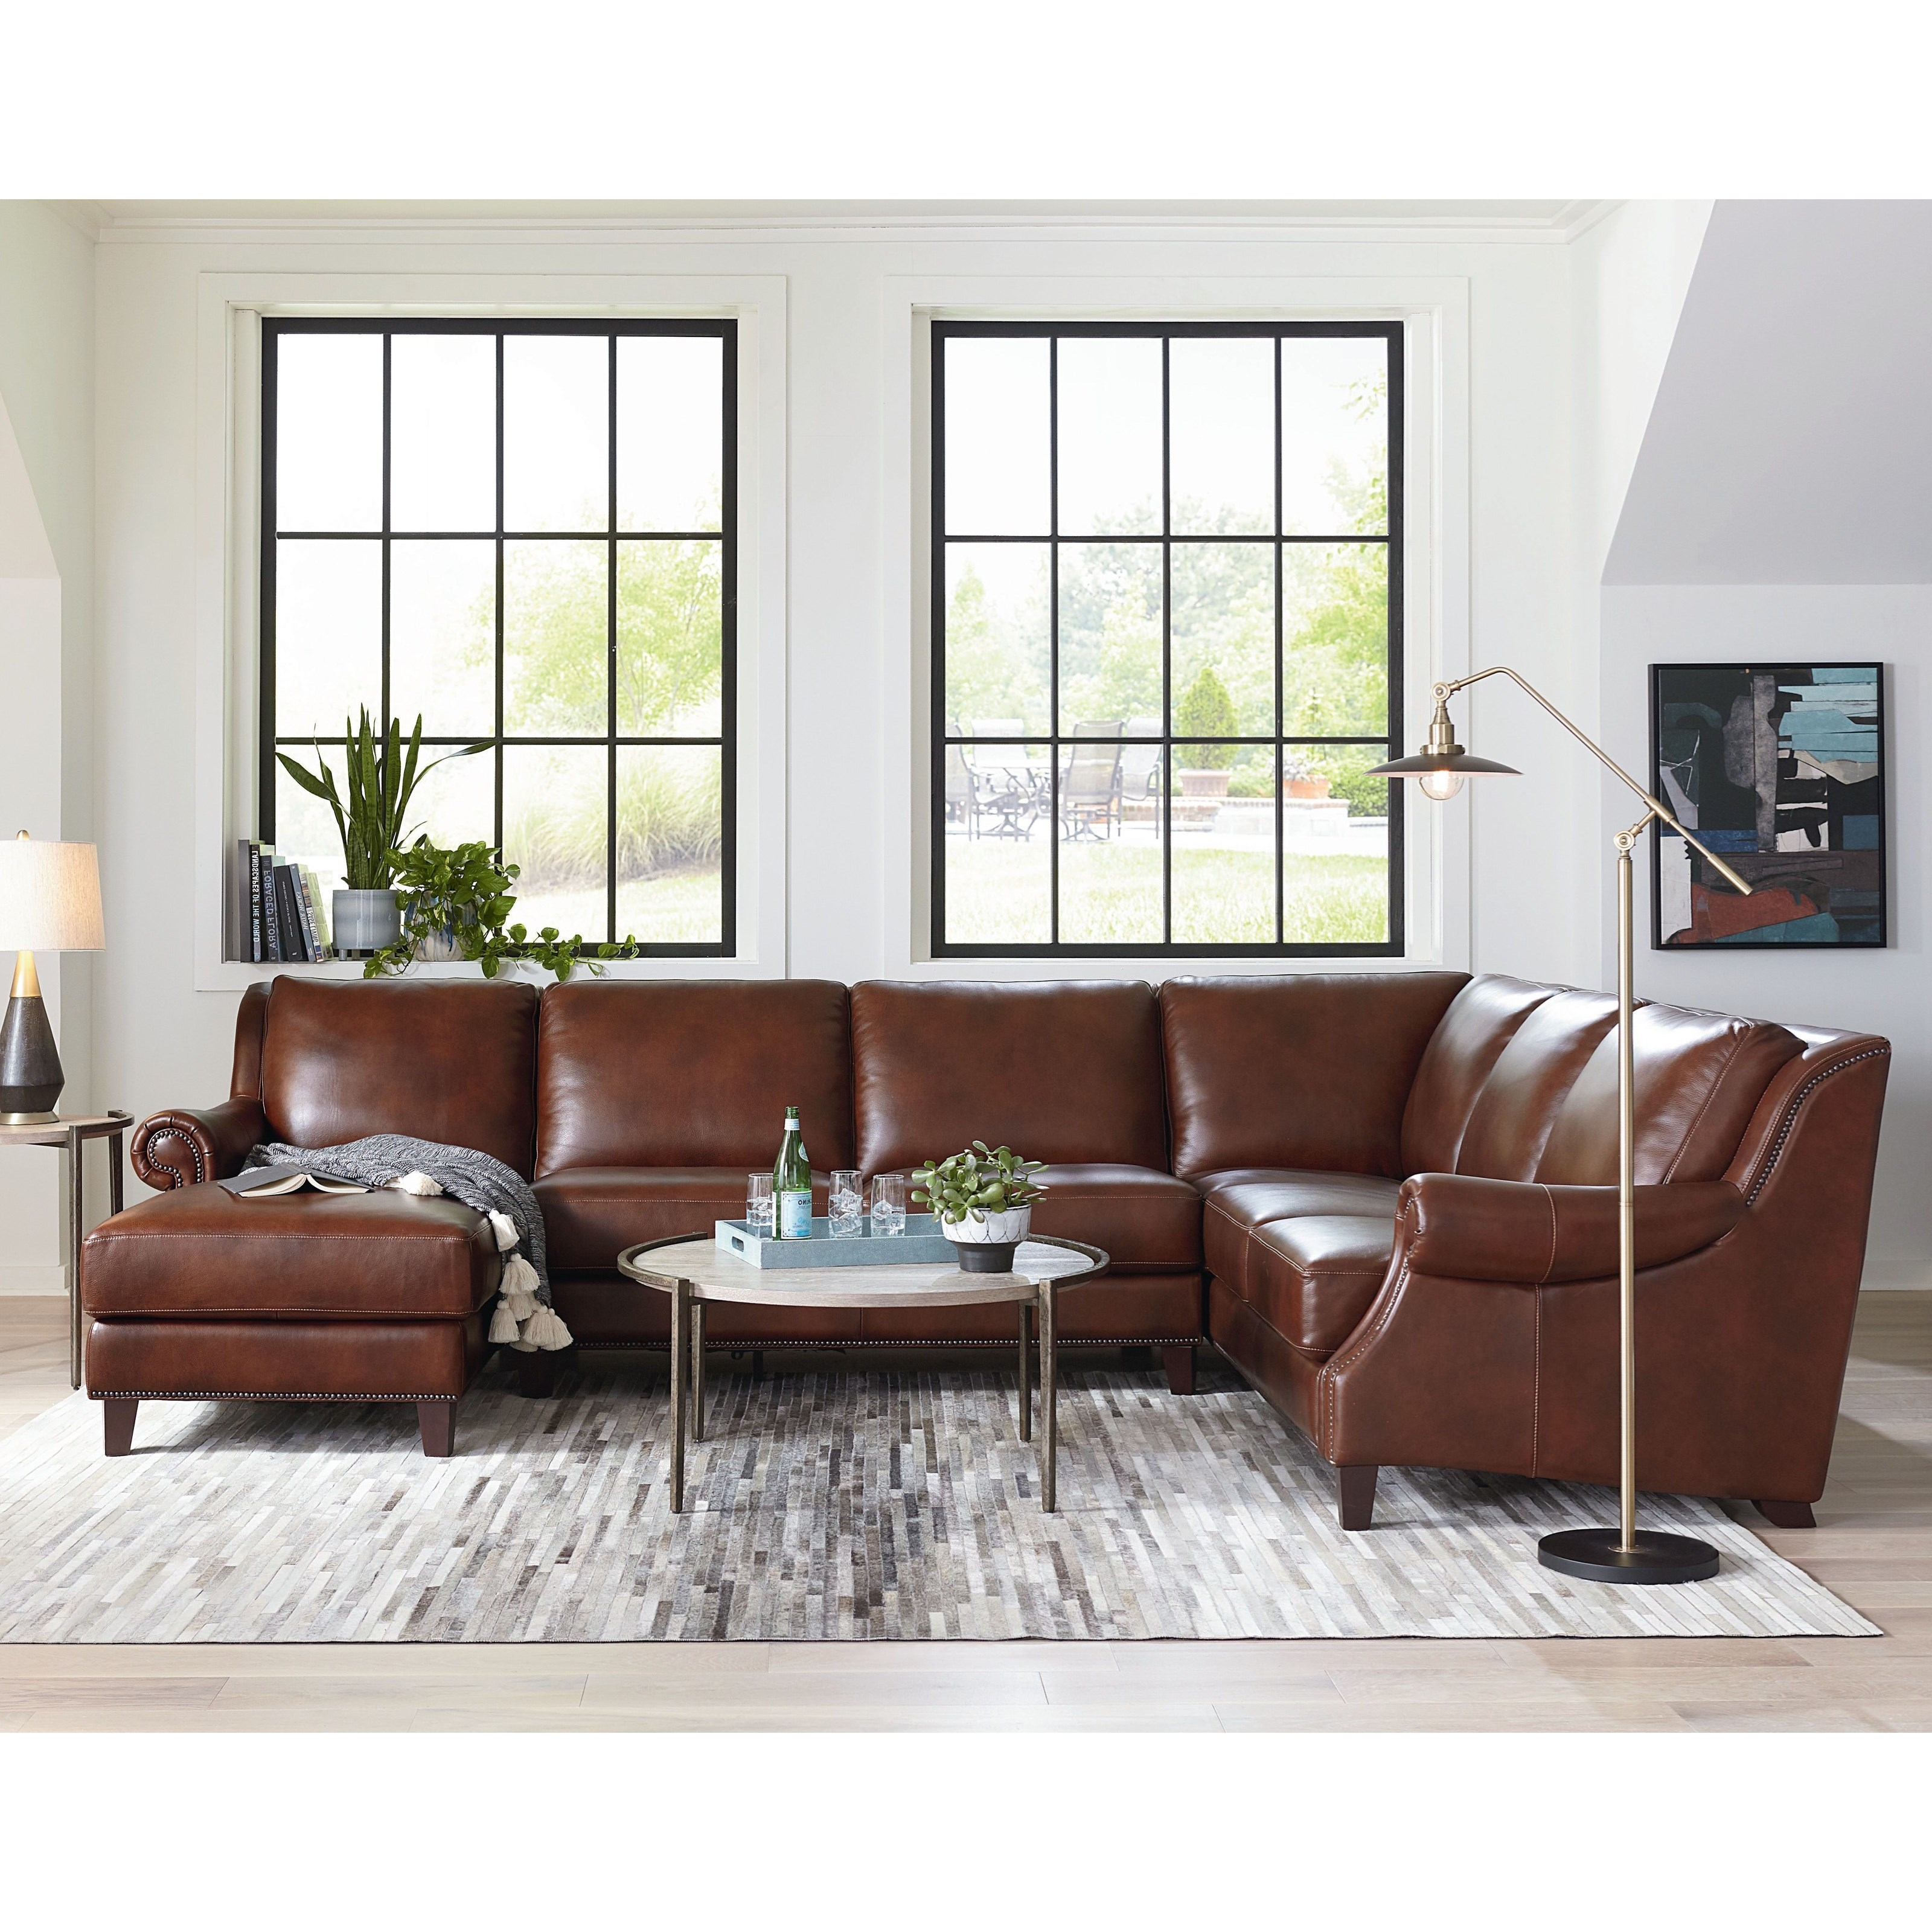 Pierce Sectional with Left-Facing Chaise by Bassett at Bassett of Cool Springs